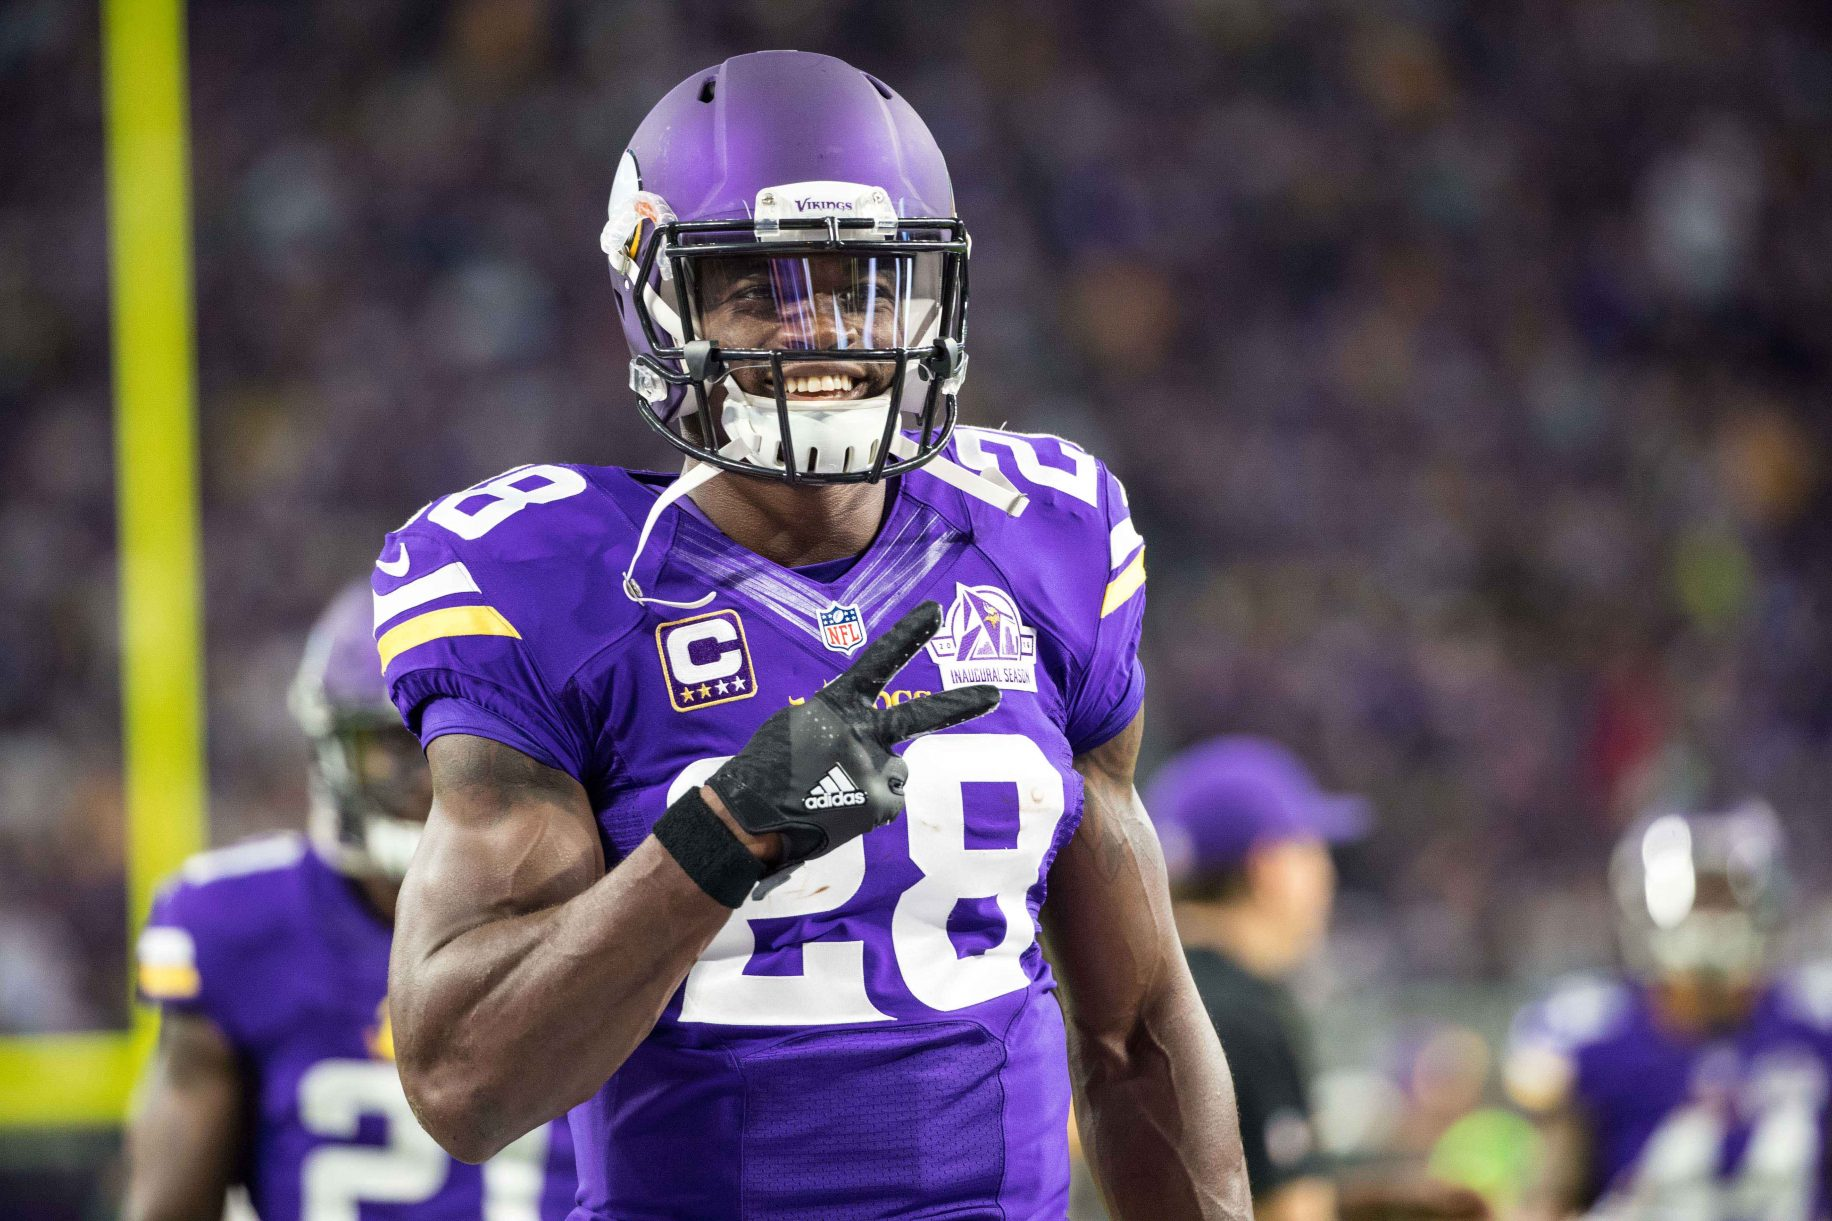 Stop the silliness: The New York Giants aren't signing Adrian Peterson 2